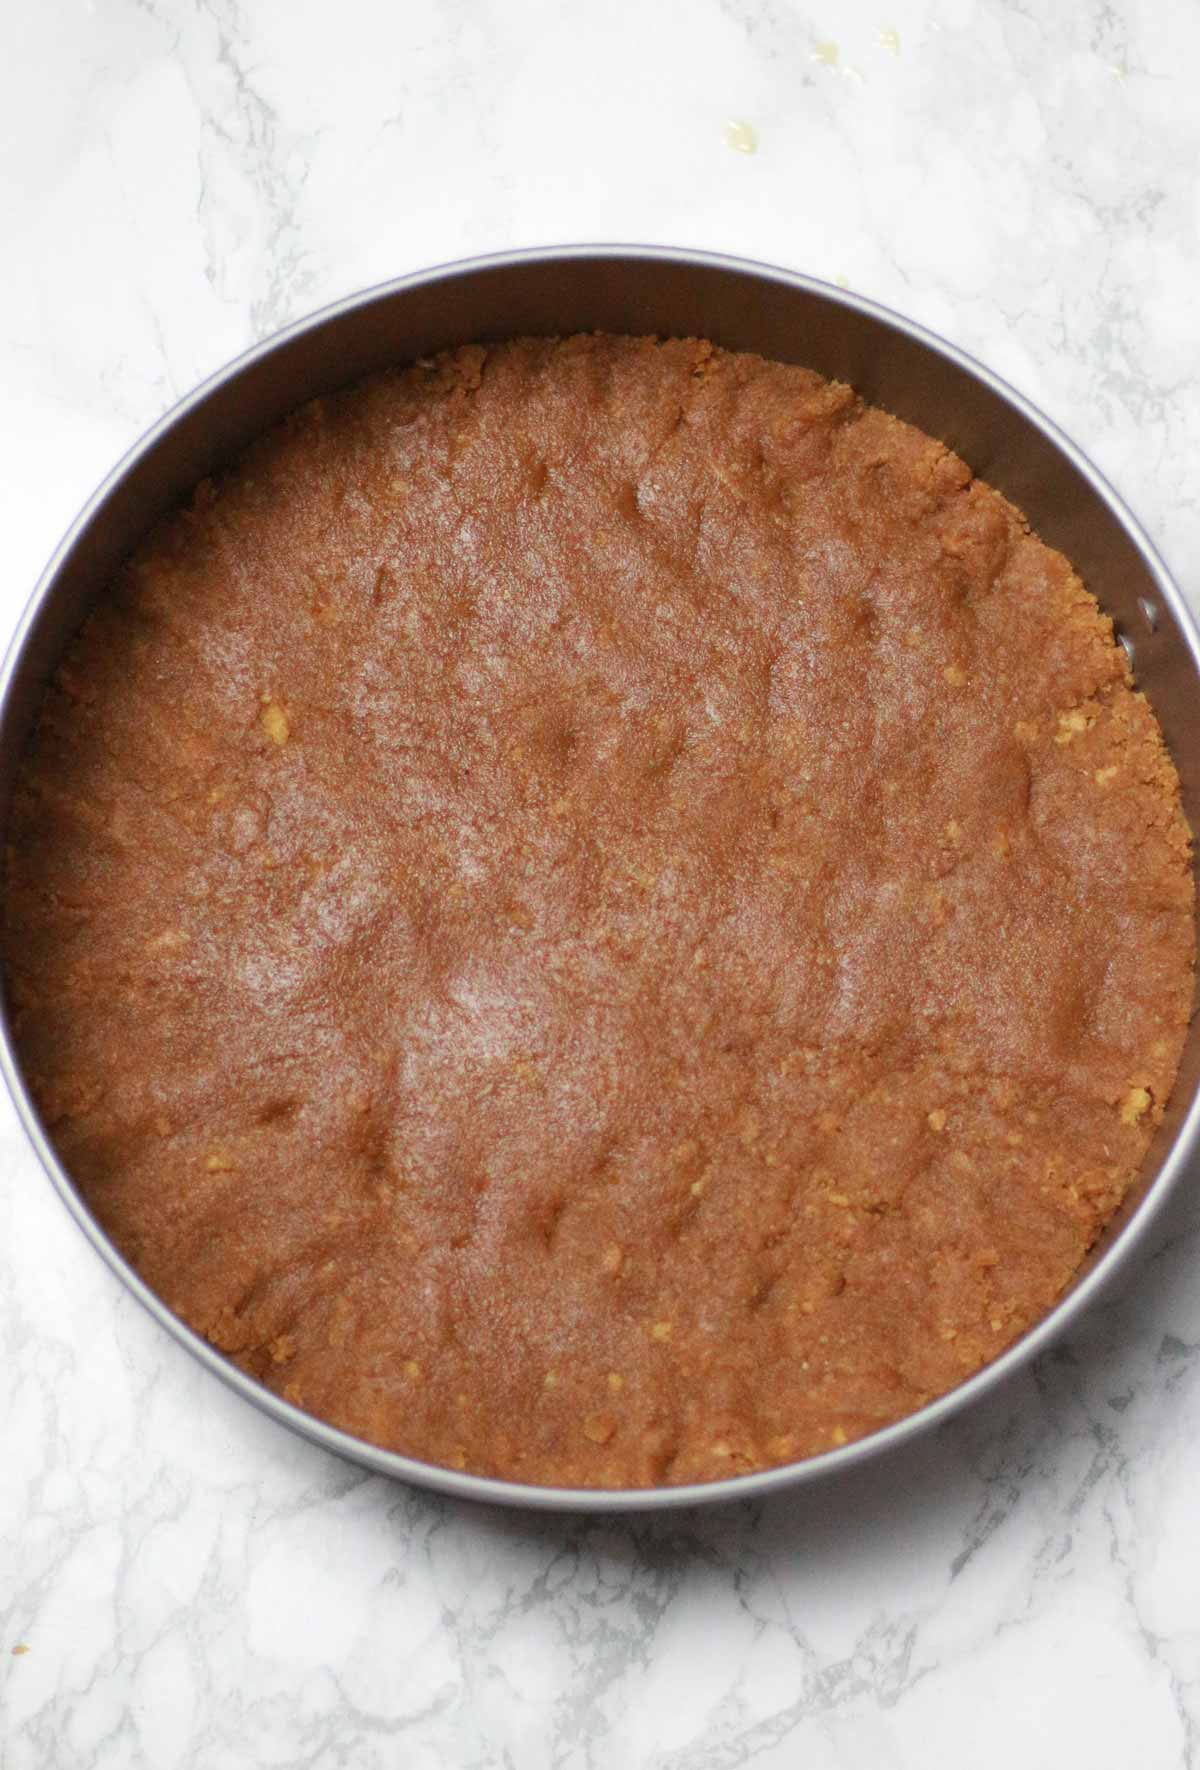 Biscuit Base Pressed In The Tin